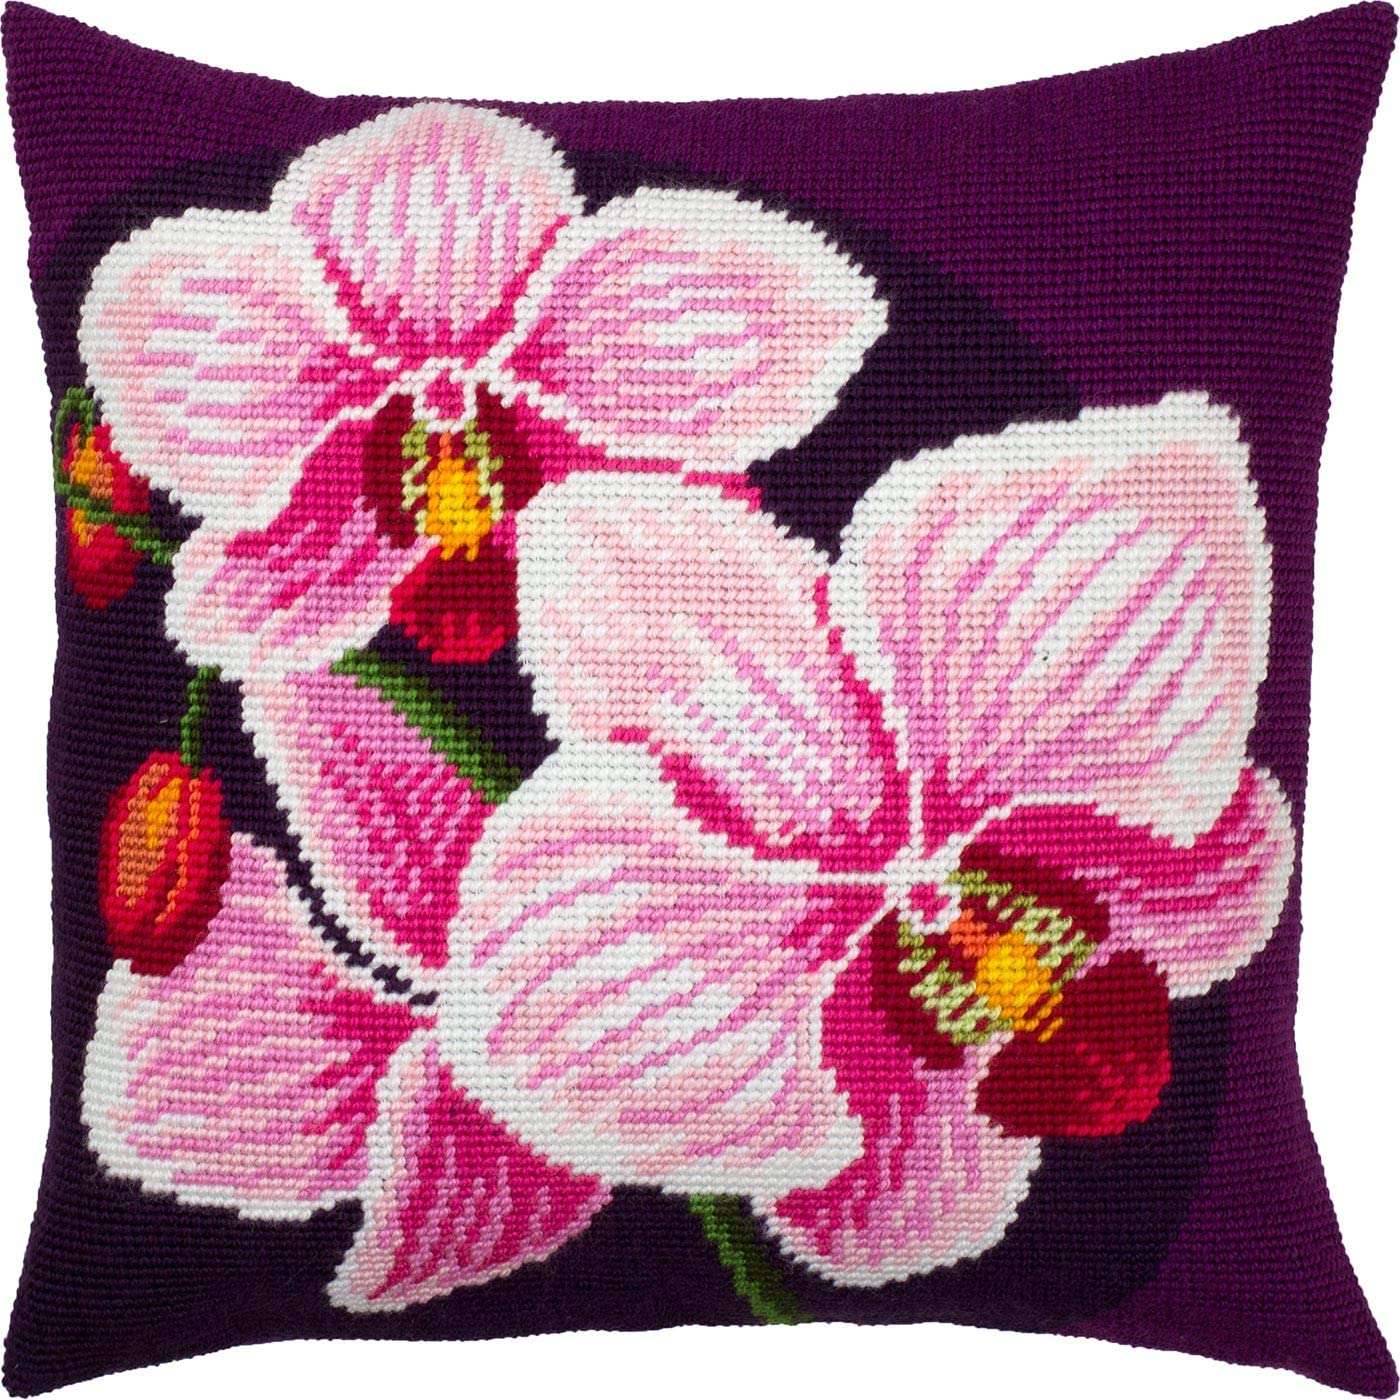 Pink Orchids. Needlepoint Kit. Throw SEAL limited product Printe price 16×16 Pillow Inches.